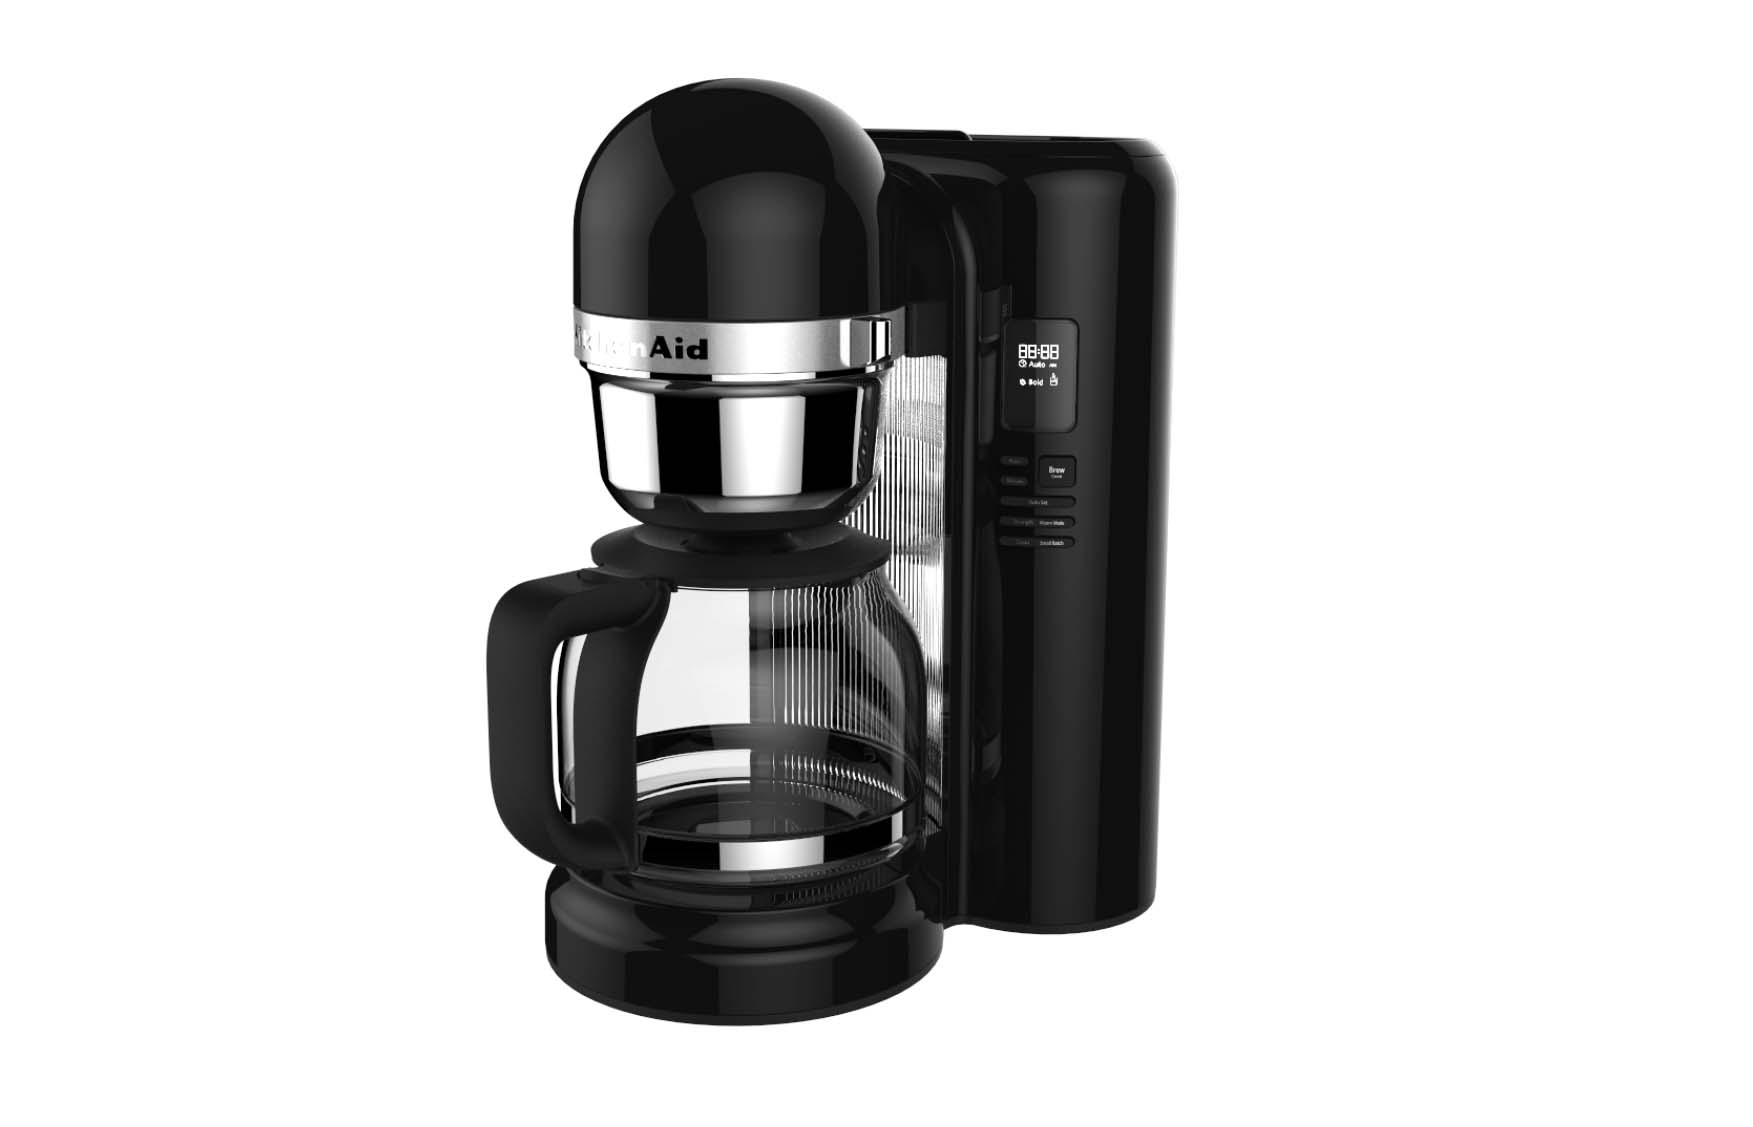 Kitchenaid Coffee Maker New : NEW COFFEE PRODUCTS FROM KITCHENAID